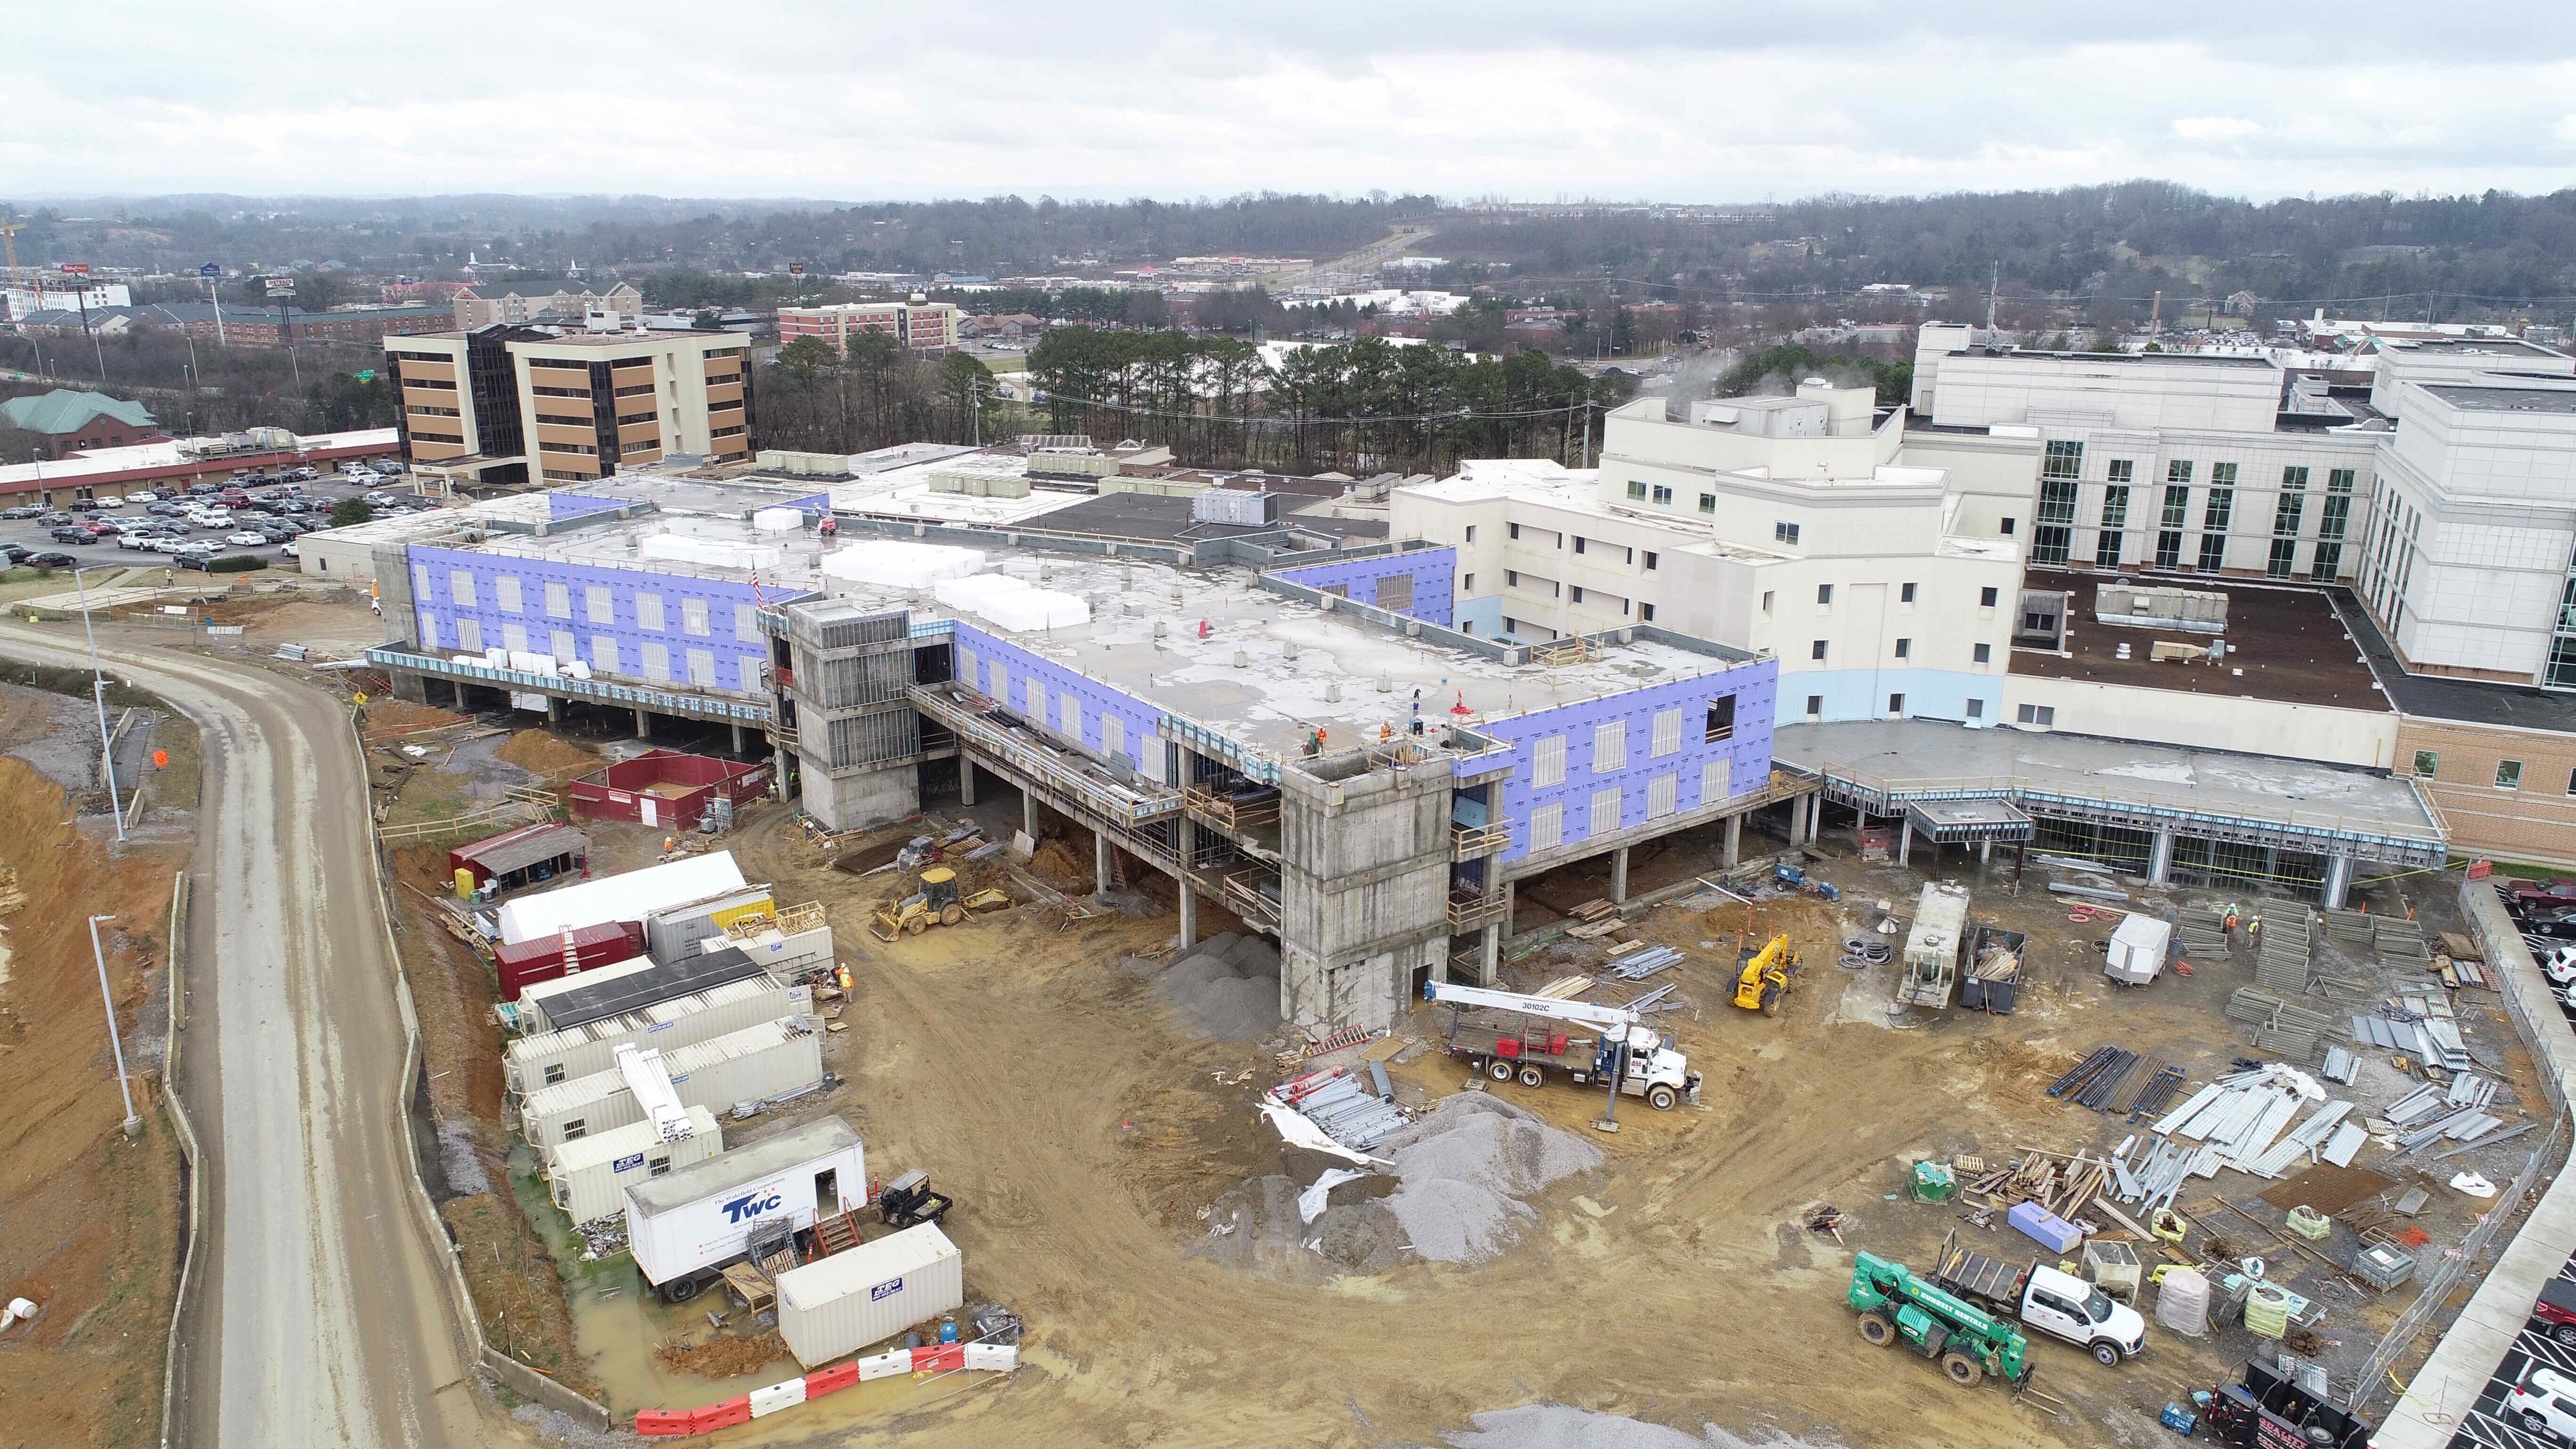 Jan. 18 Construction site aerial.